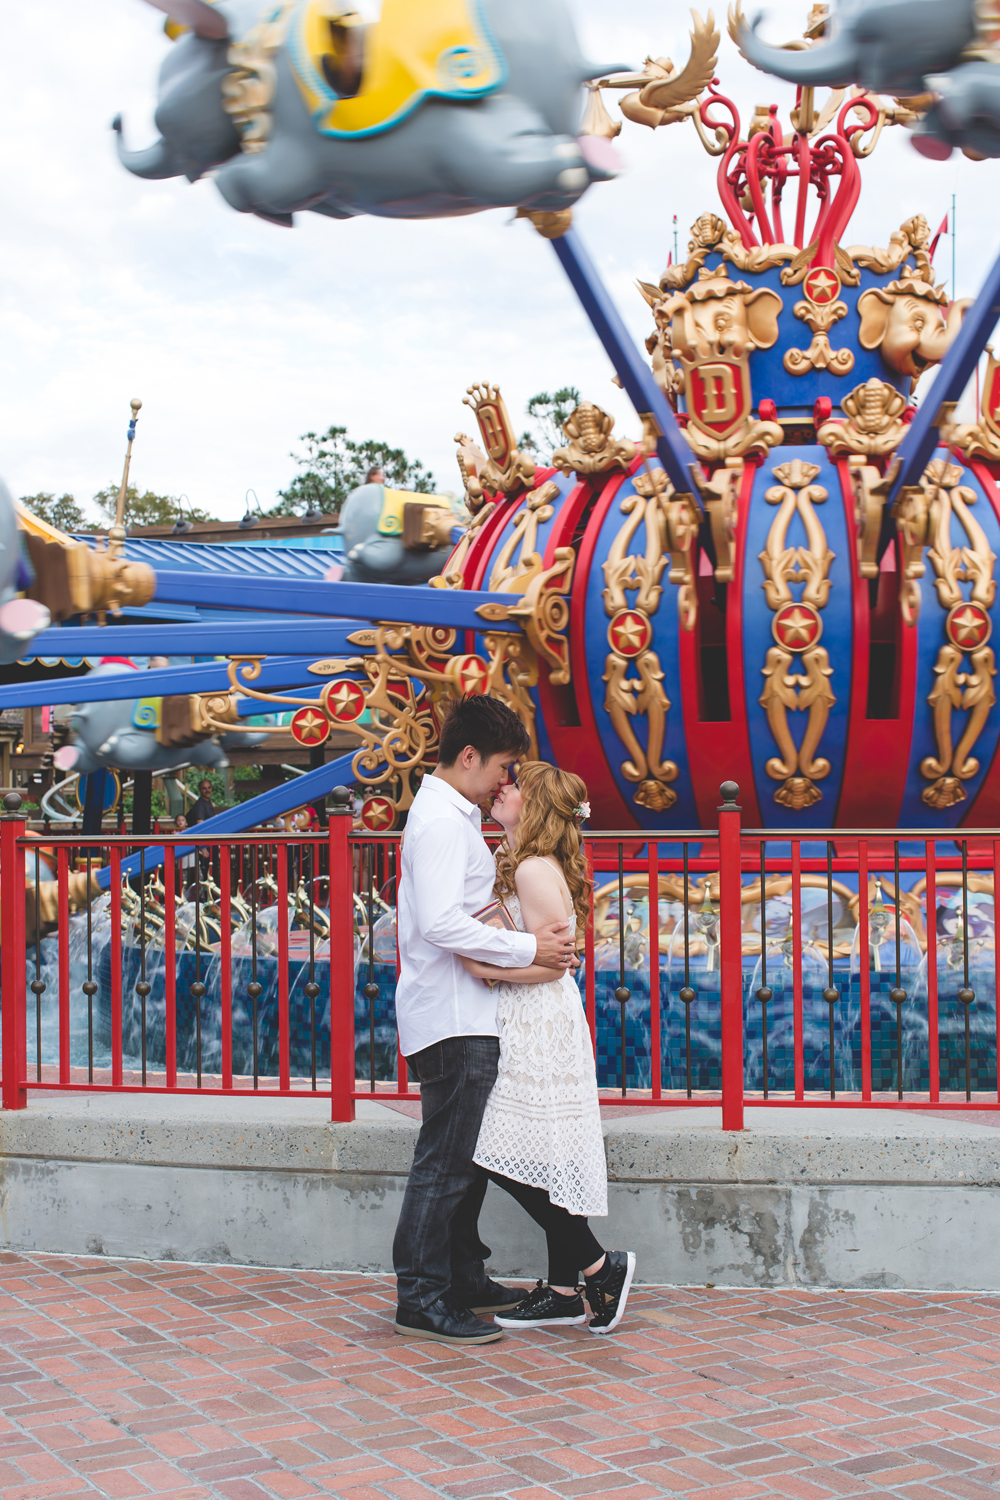 Disney Honeymoon session - Disney Engagement Photos - Disney Wedding Photographer - Destination Orlando Wedding Photographer - Jaime DiOrio (30).jpg